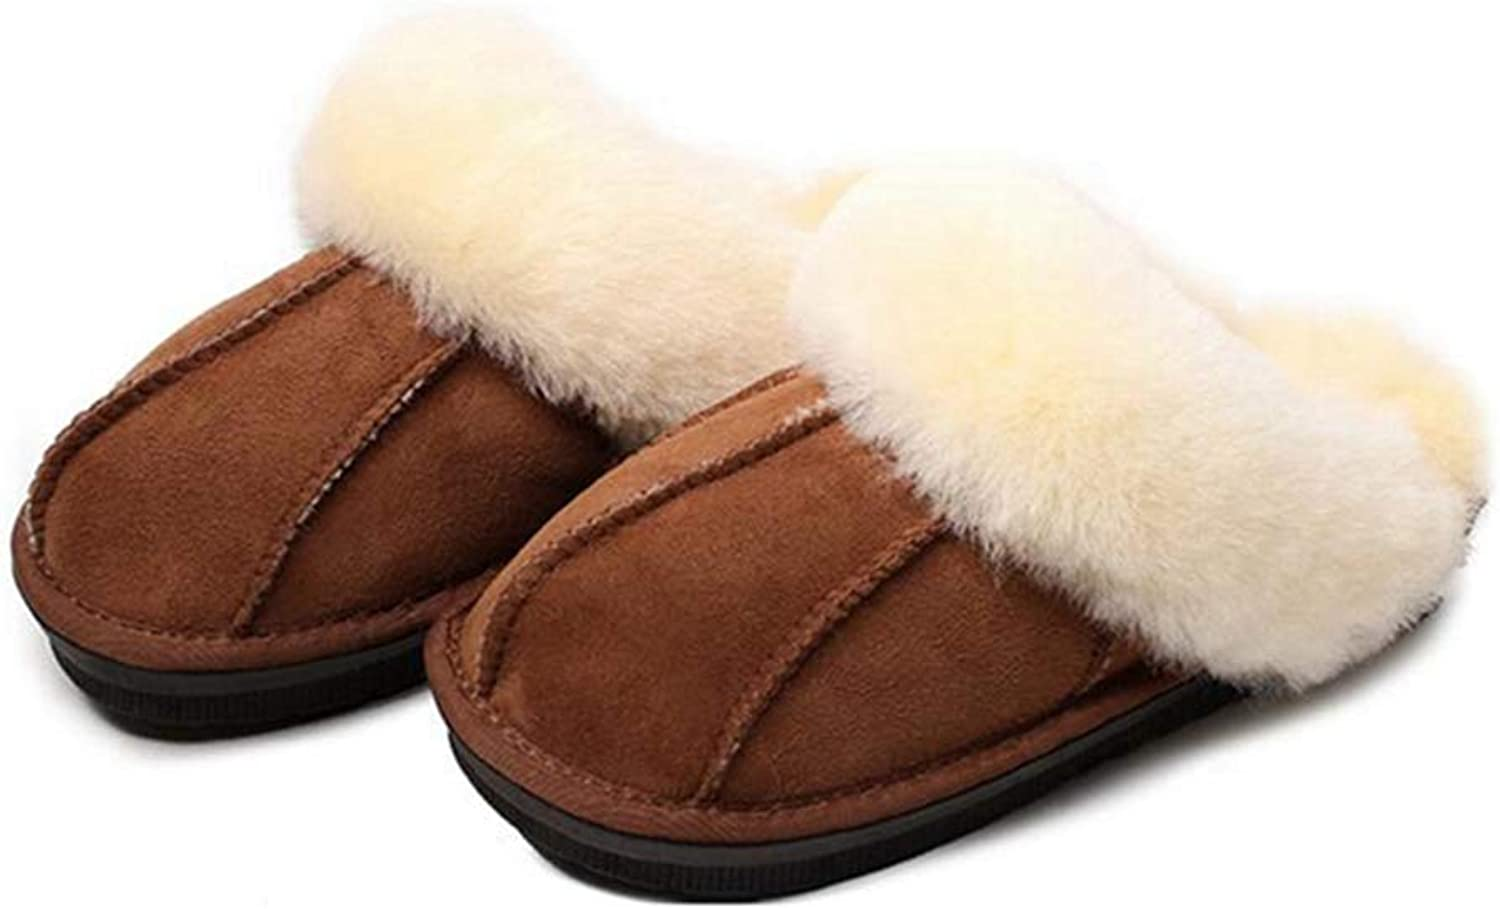 ASO-SLING Women's Memory Foam Slippers Faux Fur Lining Slip-on Clog Scuff Non-Skid House shoes for Indoor Outdoor